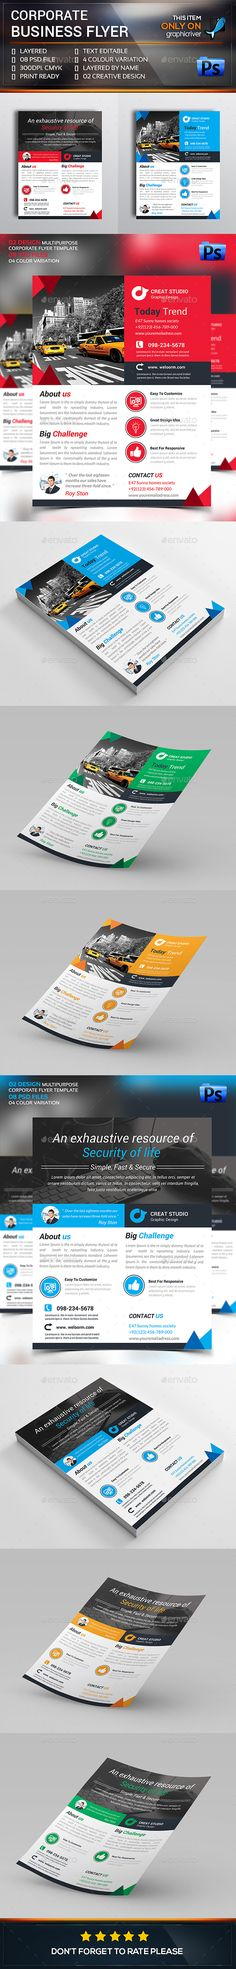 Dodi  Clean Corporate Flyers V  Flyers Template And Vs